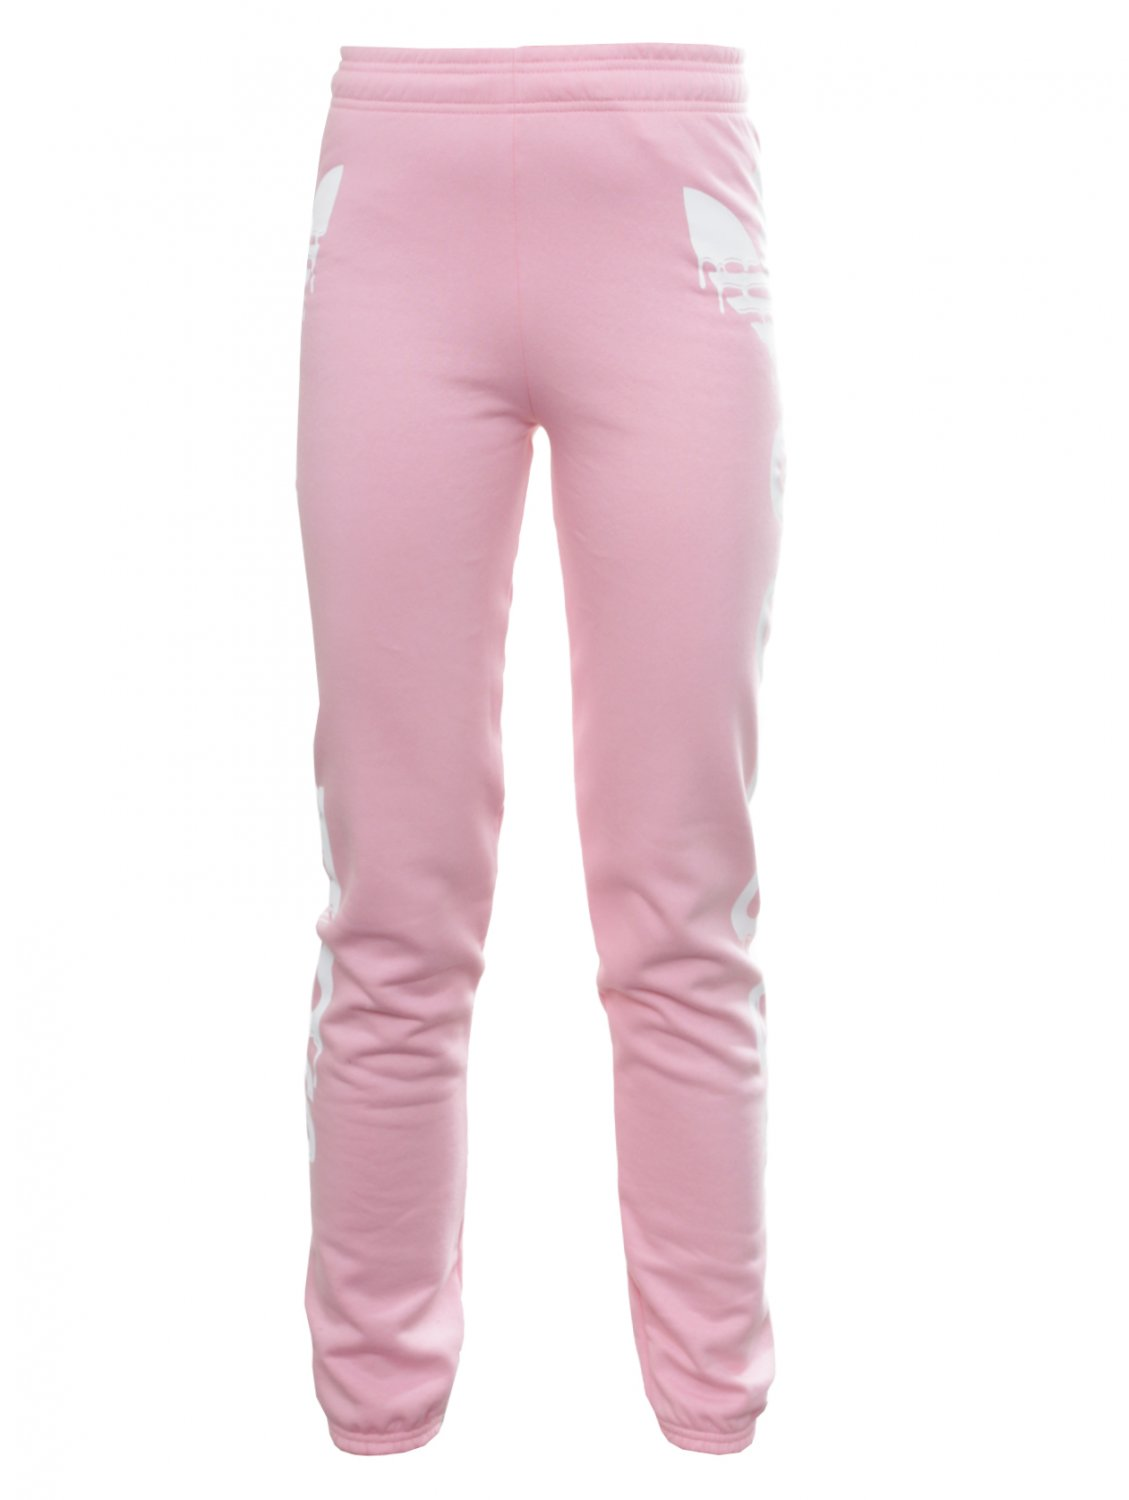 the latest 16b52 11d1d Jeremy Scott for adidas Logo Detail Sweatpants Pink in Pink - Lyst